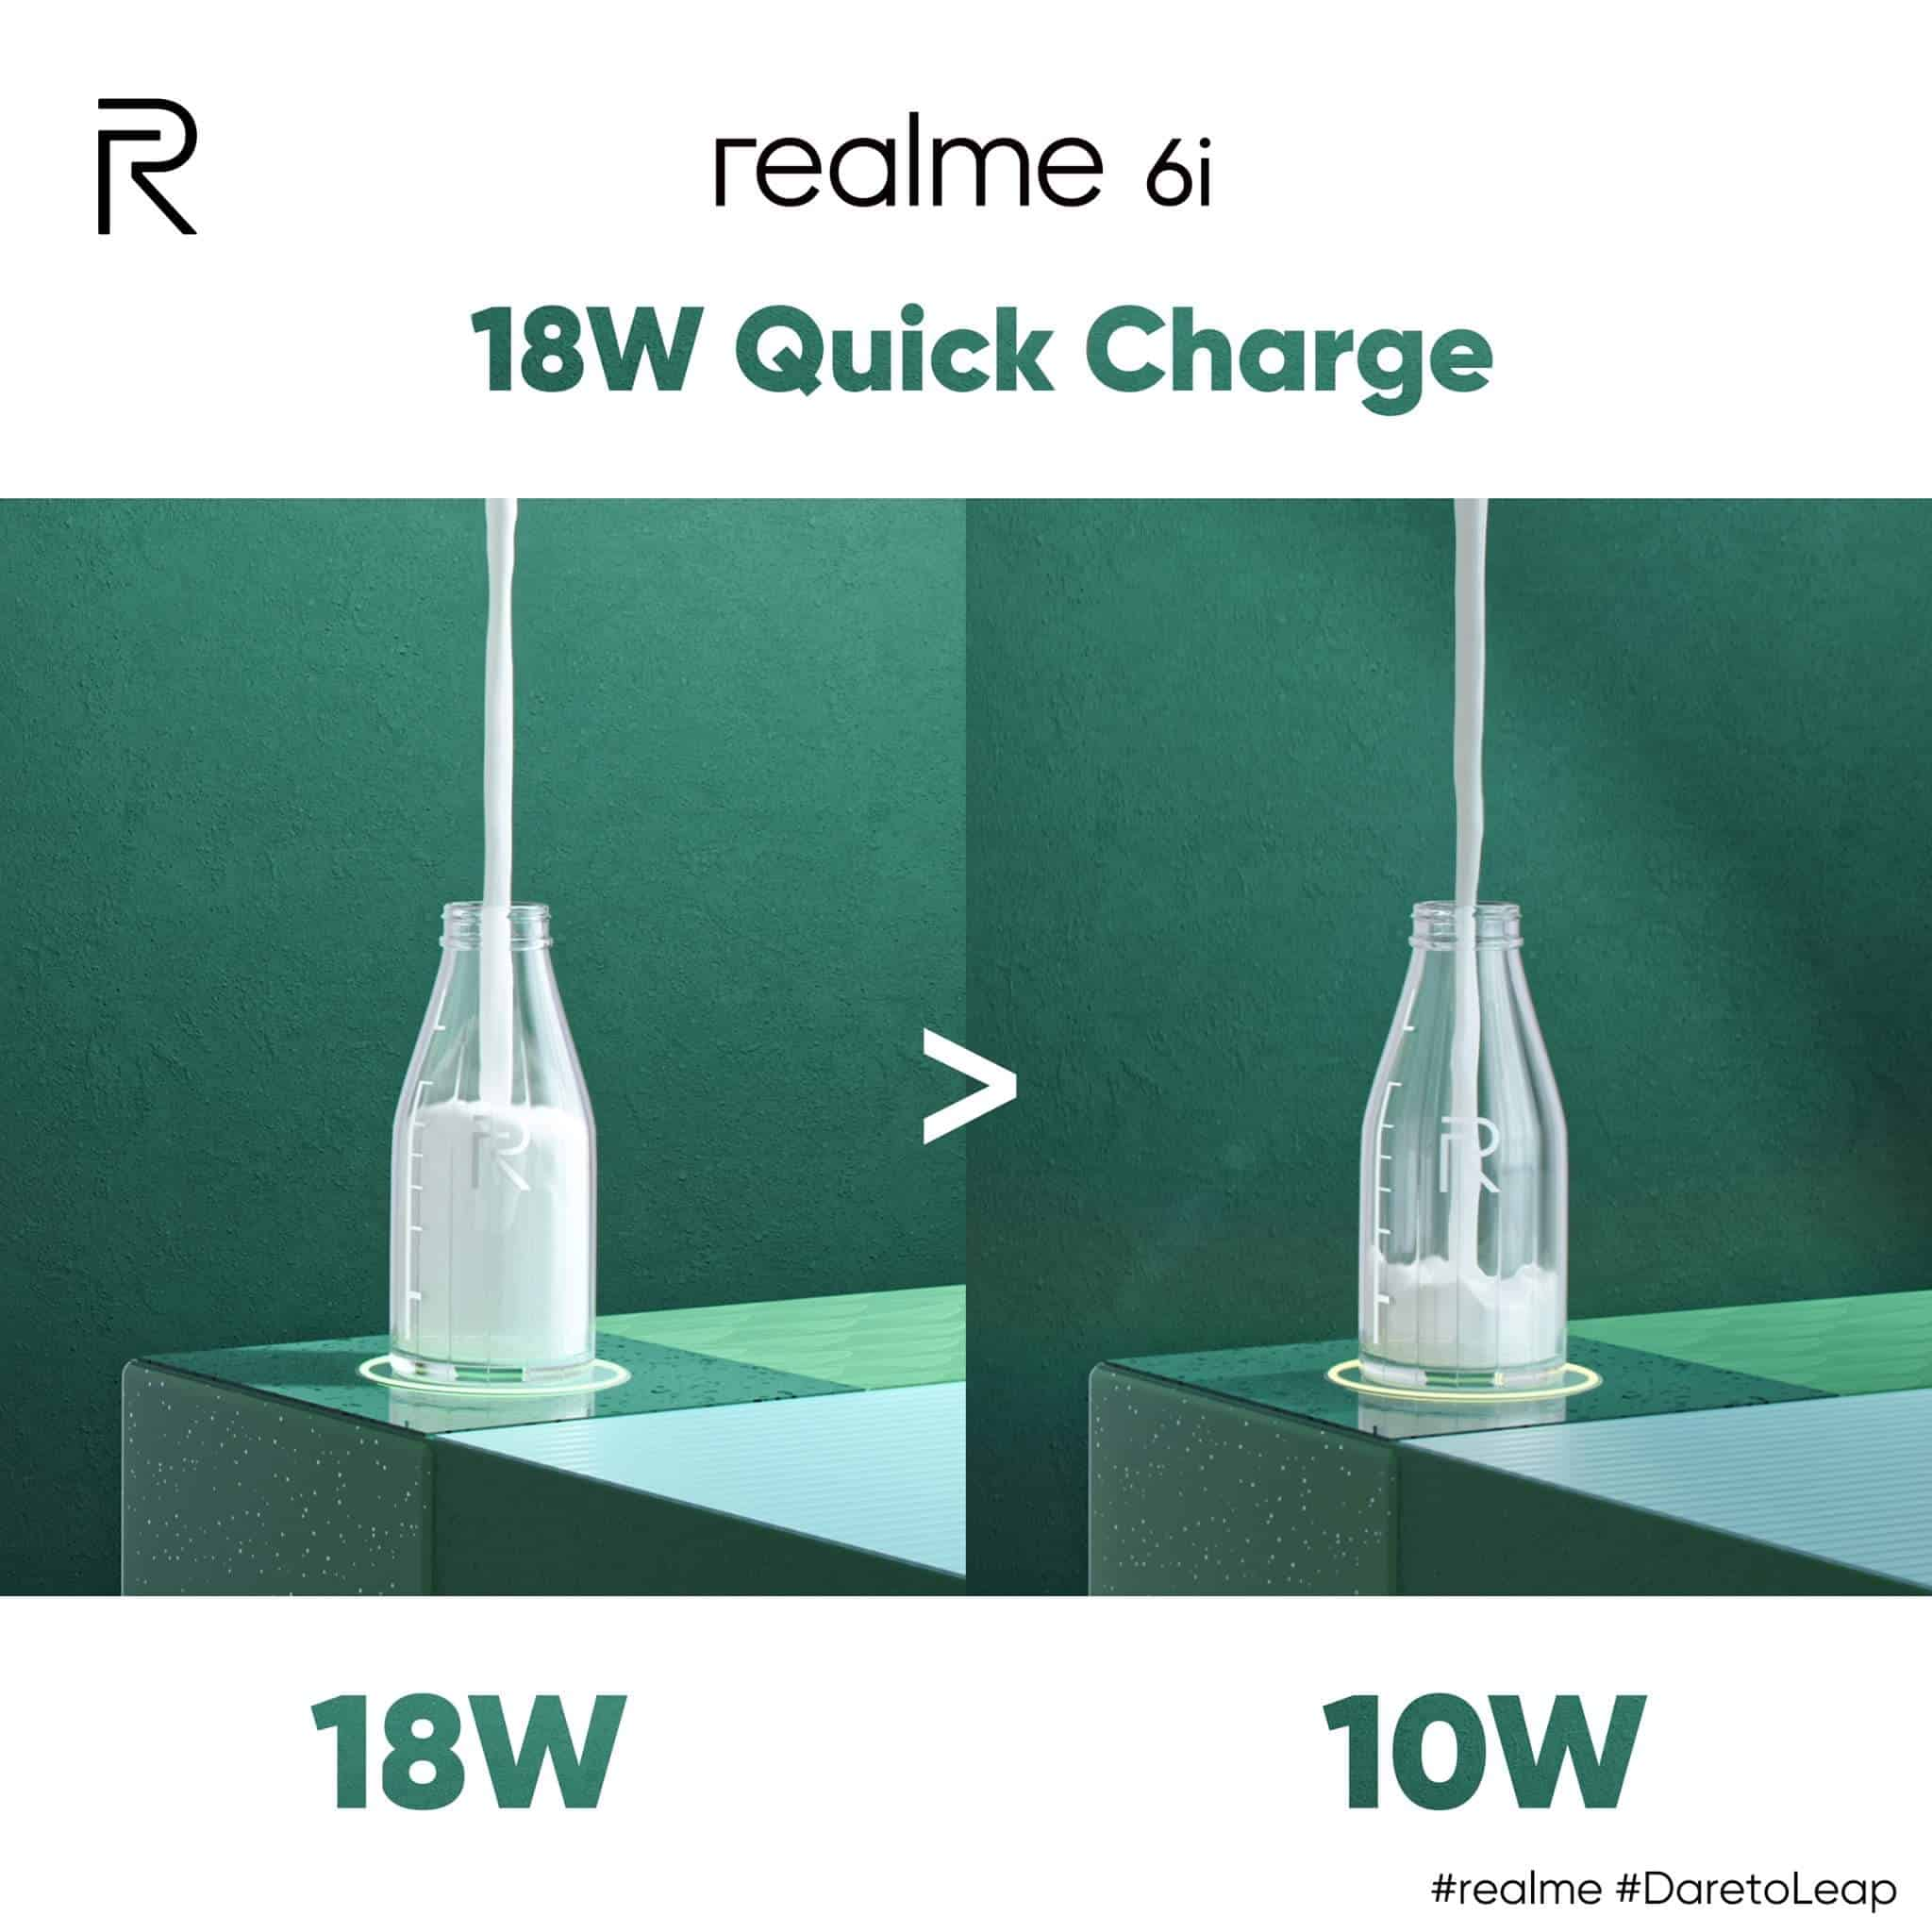 realme 6i quick charge